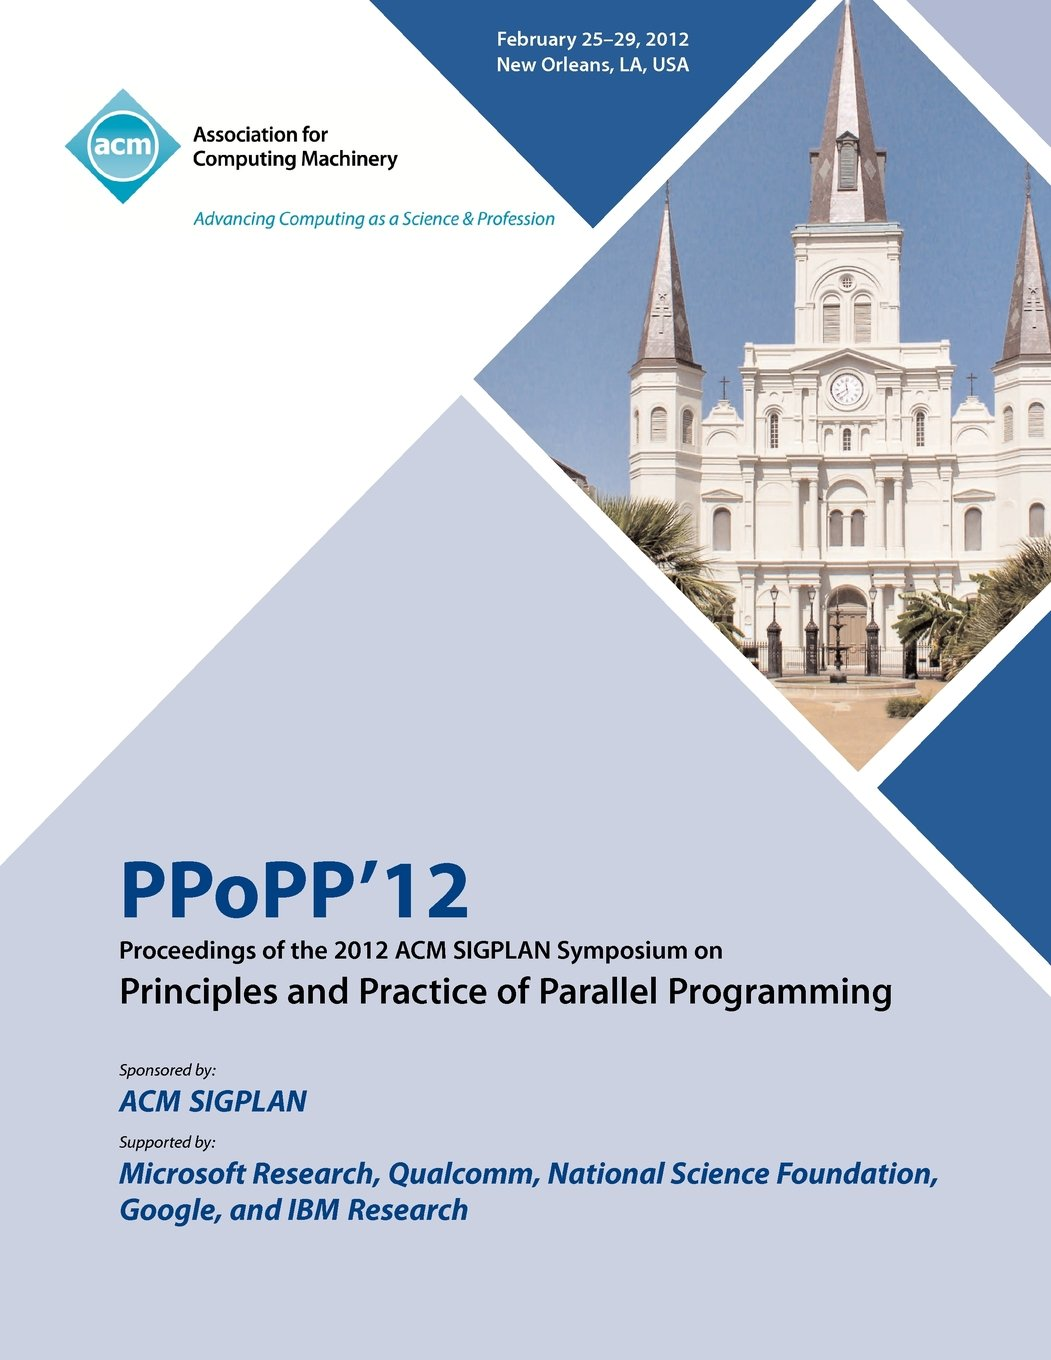 PPoPP 12 Proceedings of the 2012 ACM SIGPLAN Symposium on Principles and Practice of Parallel Programming PDF